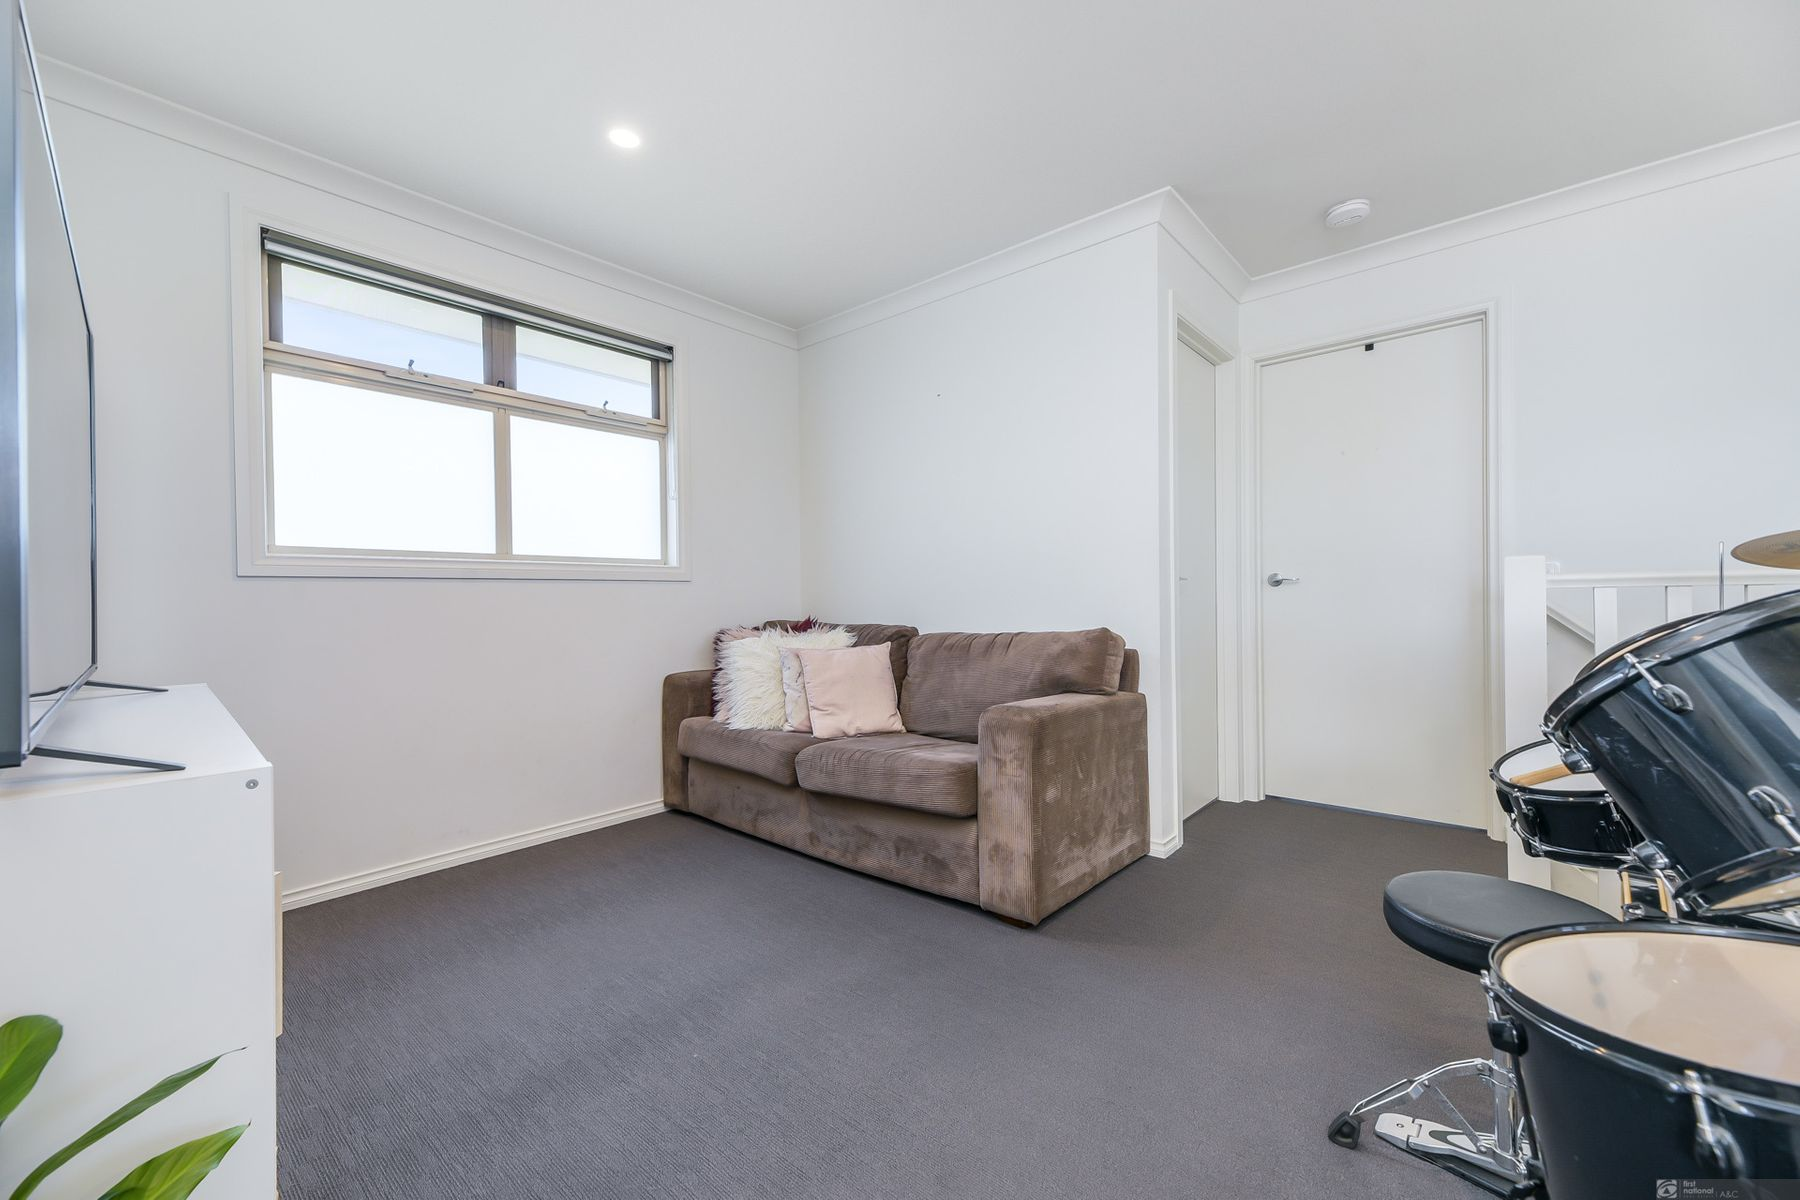 2/6 Souter Street, Beaconsfield, VIC 3807